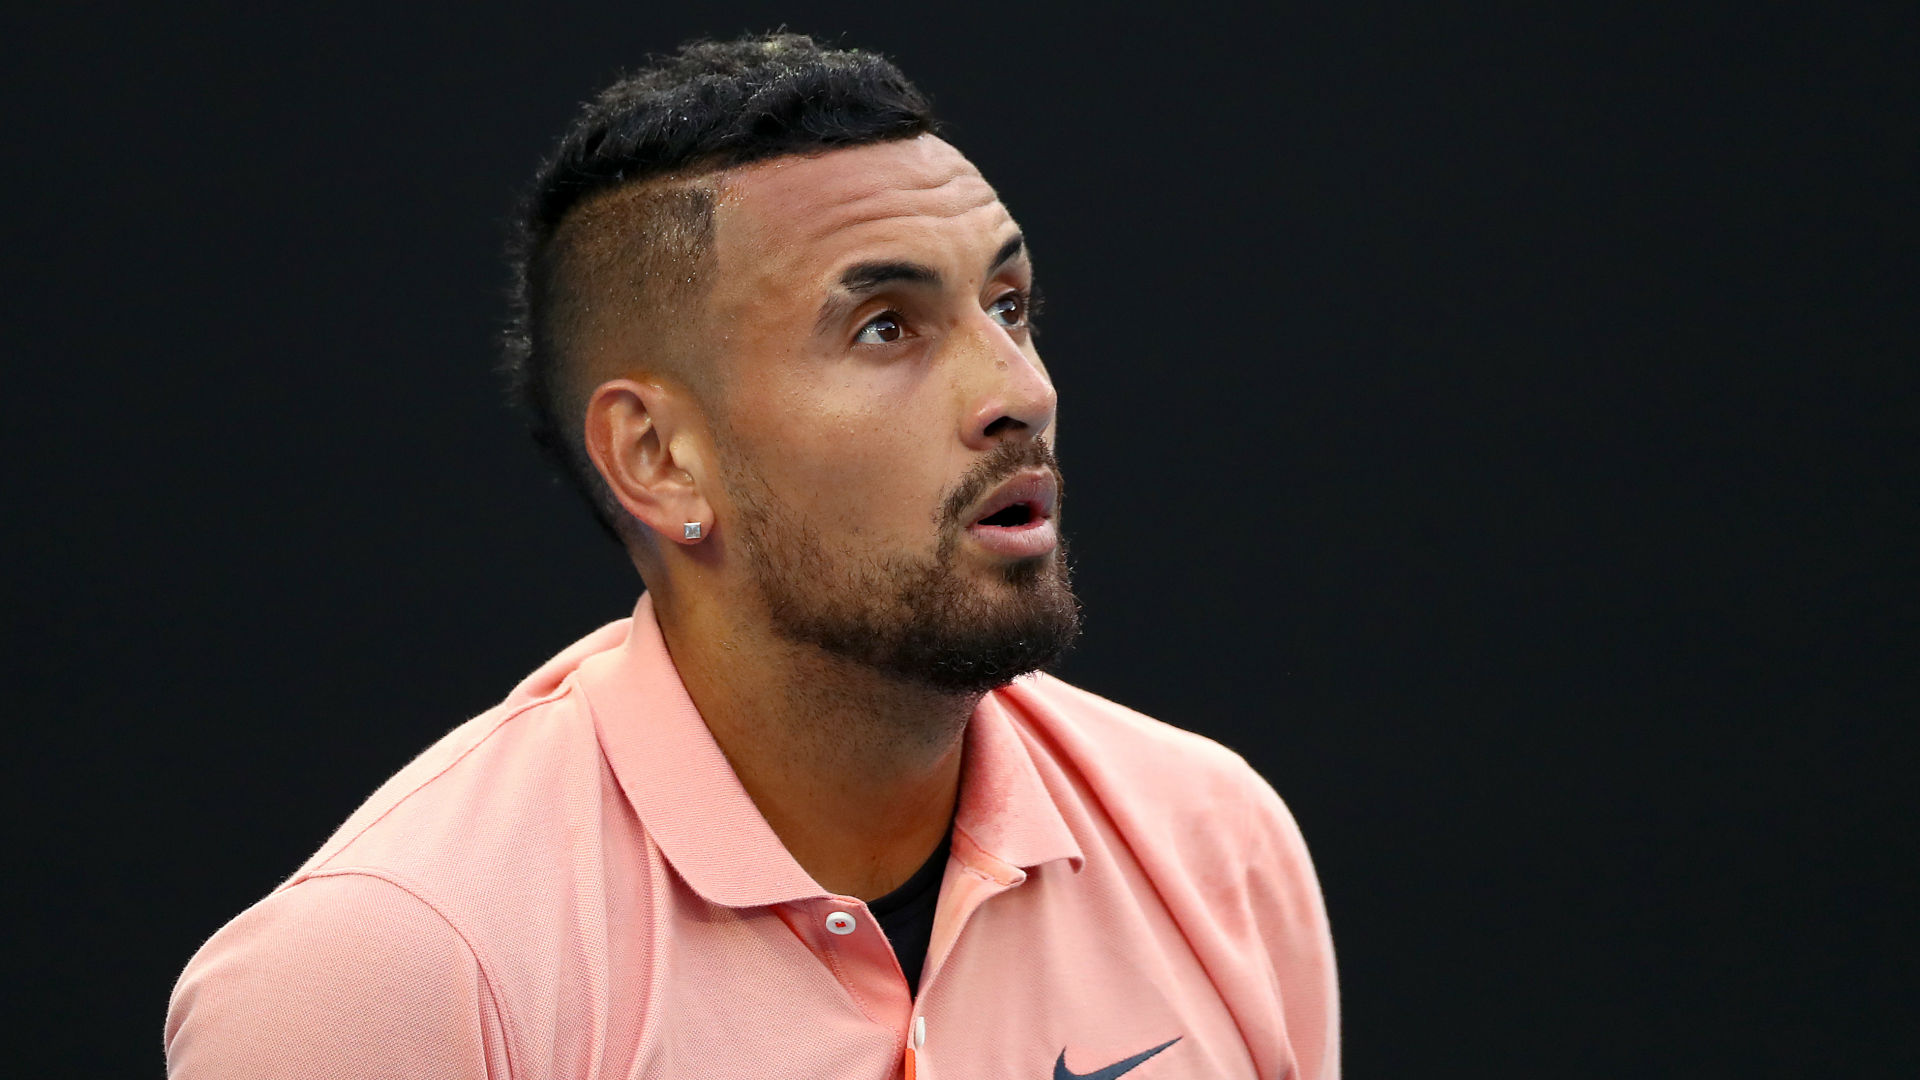 The US Open is schedule to start on August 31 in New York, however, Nick Kyrgios will not feature at Flushing Meadows.